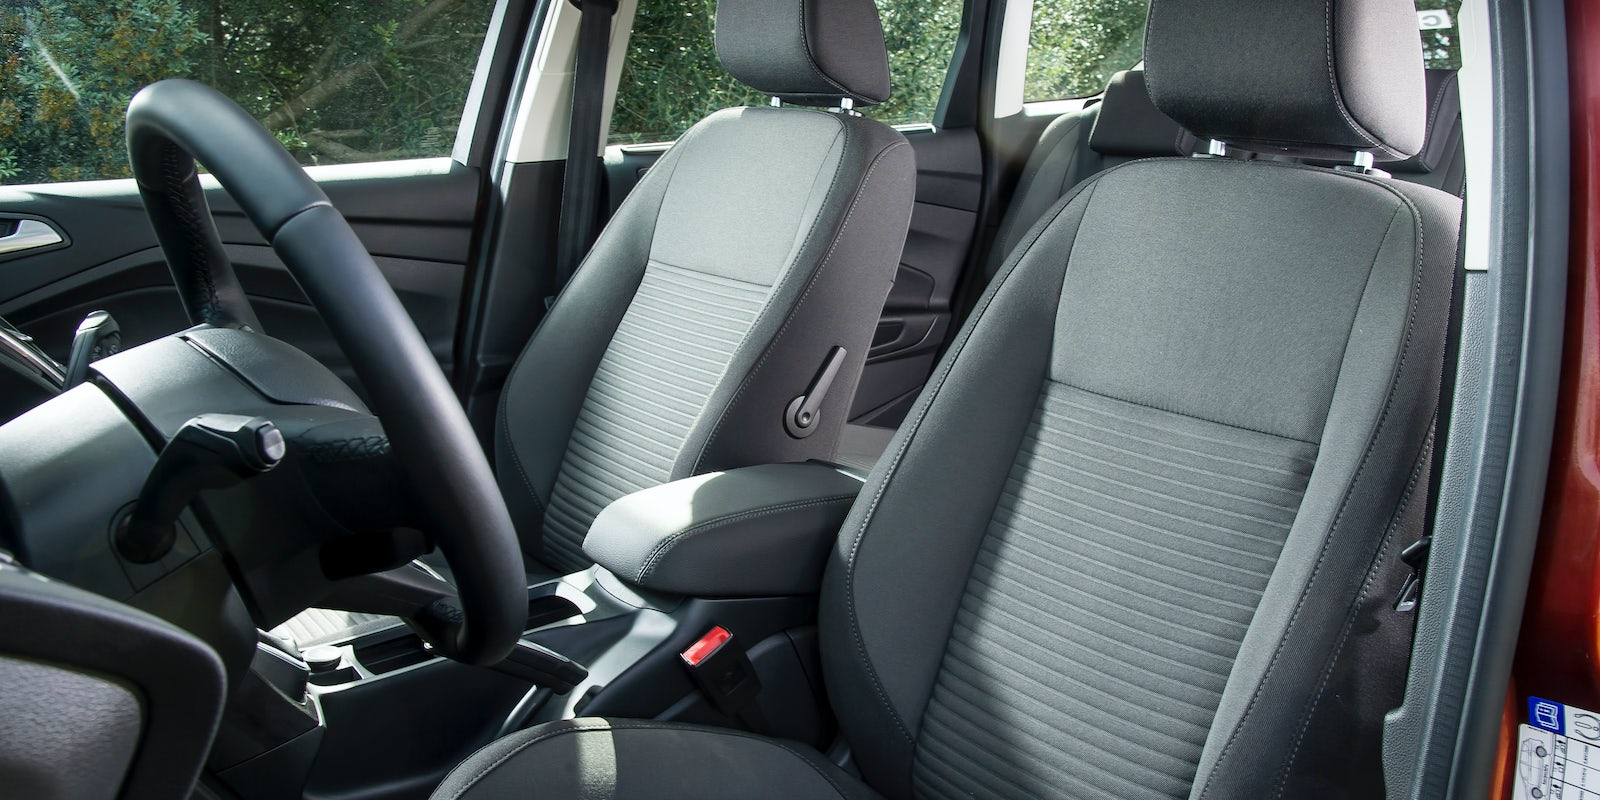 Ford C-Max interior and infotainment   carwow